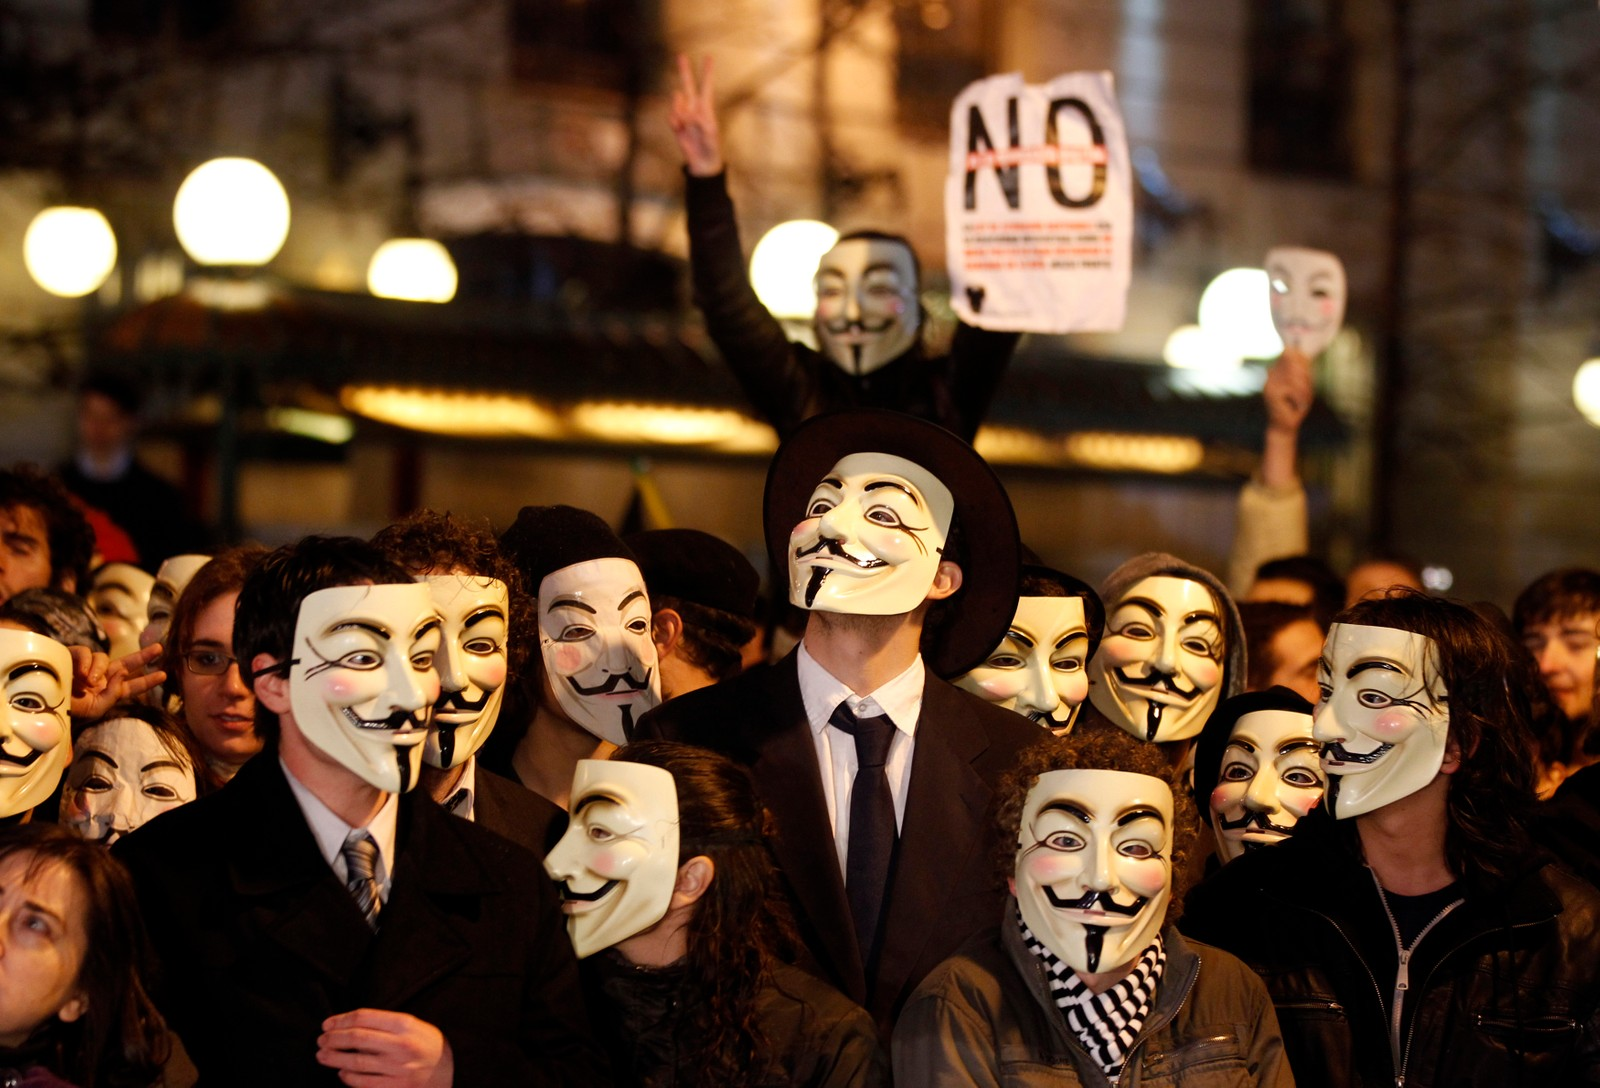 Demonstrators wearing Guy Fawkes masks protest against Spain's Culture Minister Angeles Gonzalez-Sinde and a new legislation yet to be passed, which would give the government the power to close down web pages containing links to copyrighted content such as films and music, in front of the Spanish Culture Ministry in Madrid February 13, 2011. REUTERS/Sergio Perez (SPAIN - Tags: SOCIETY IMAGES OF THE DAY CIVIL UNREST POLITICS)